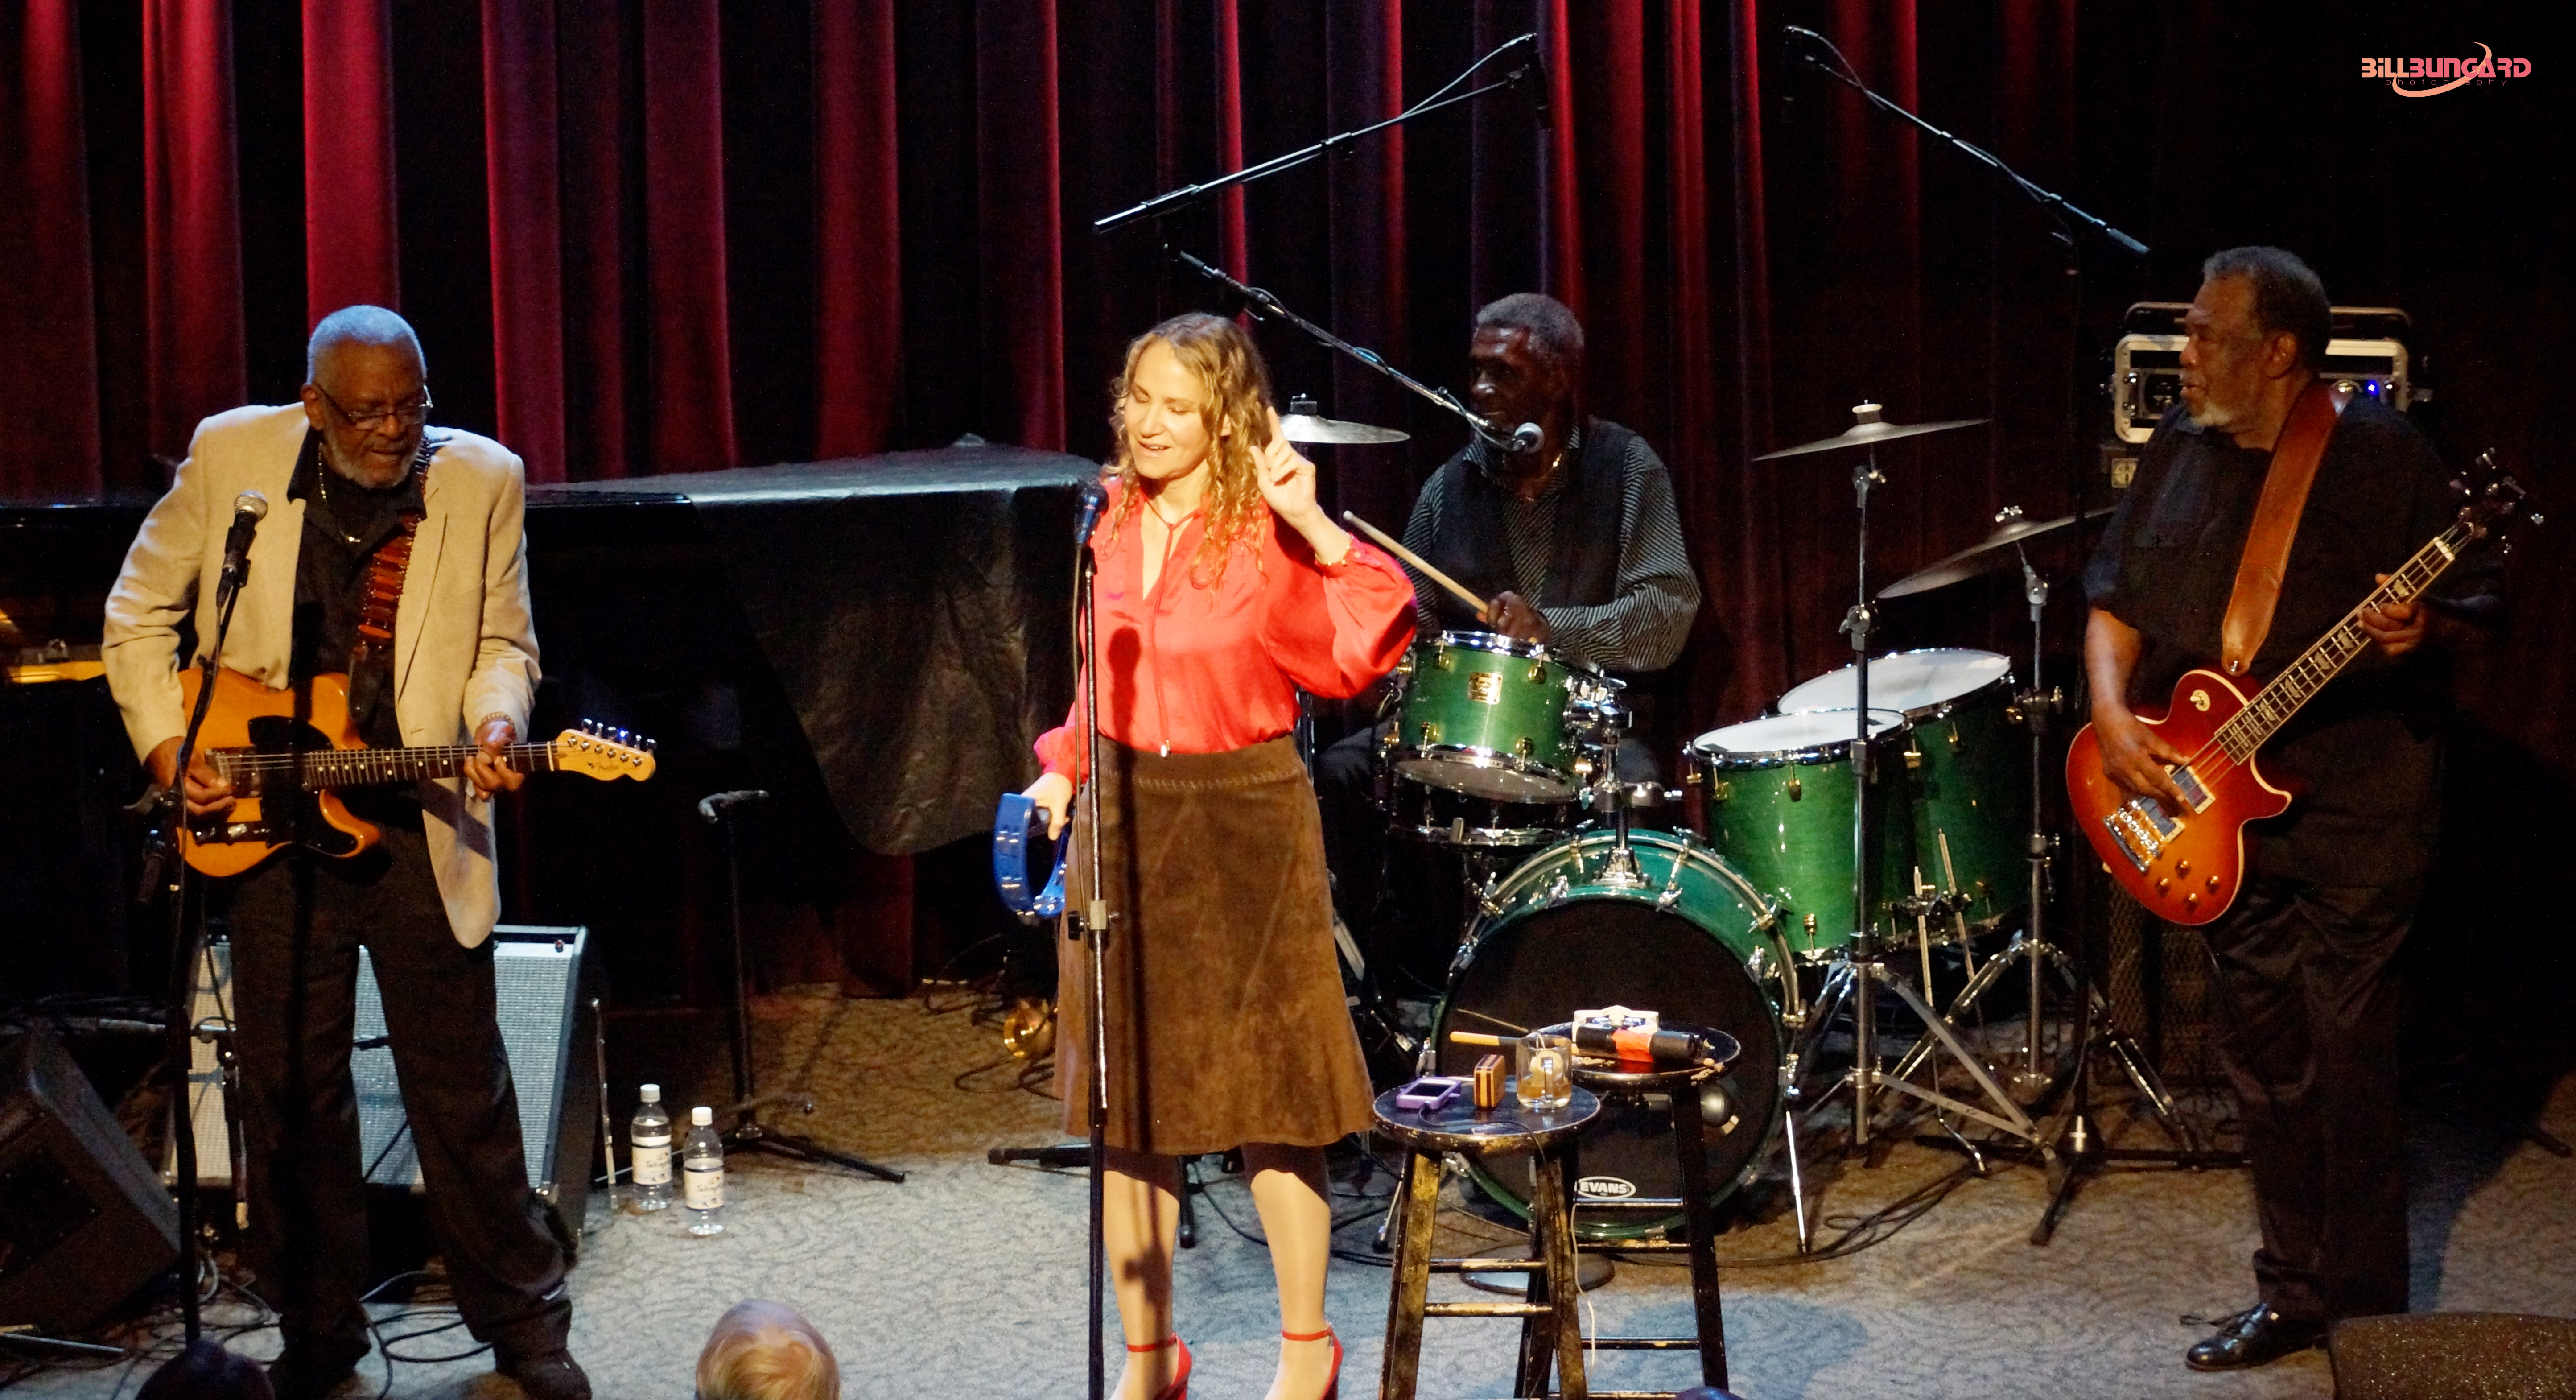 Joan Osborne and Holmes Brothers at Jazz Alley (Photo by Bill Bungard)